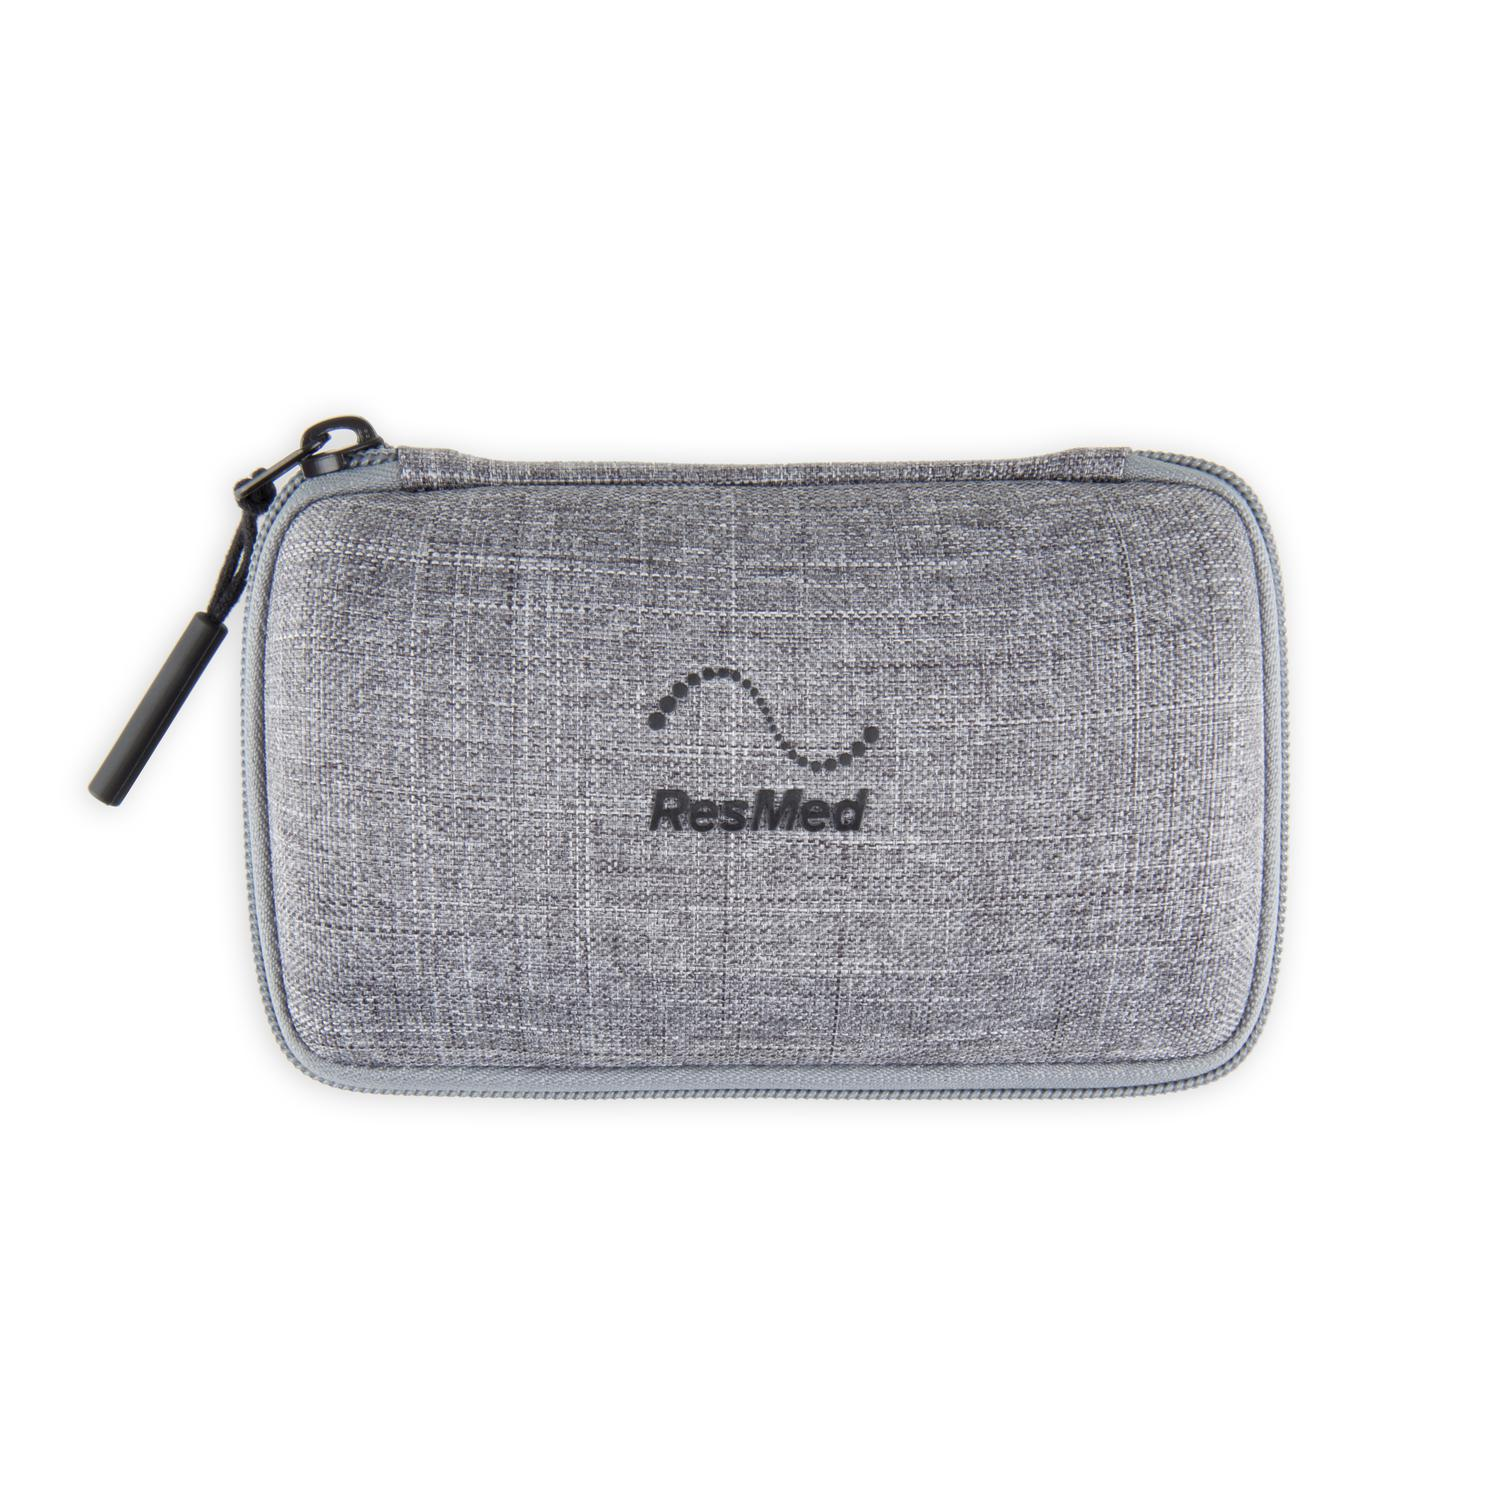 Resmed Airmini Travel Cpap Hard Case Cpapdirect Com